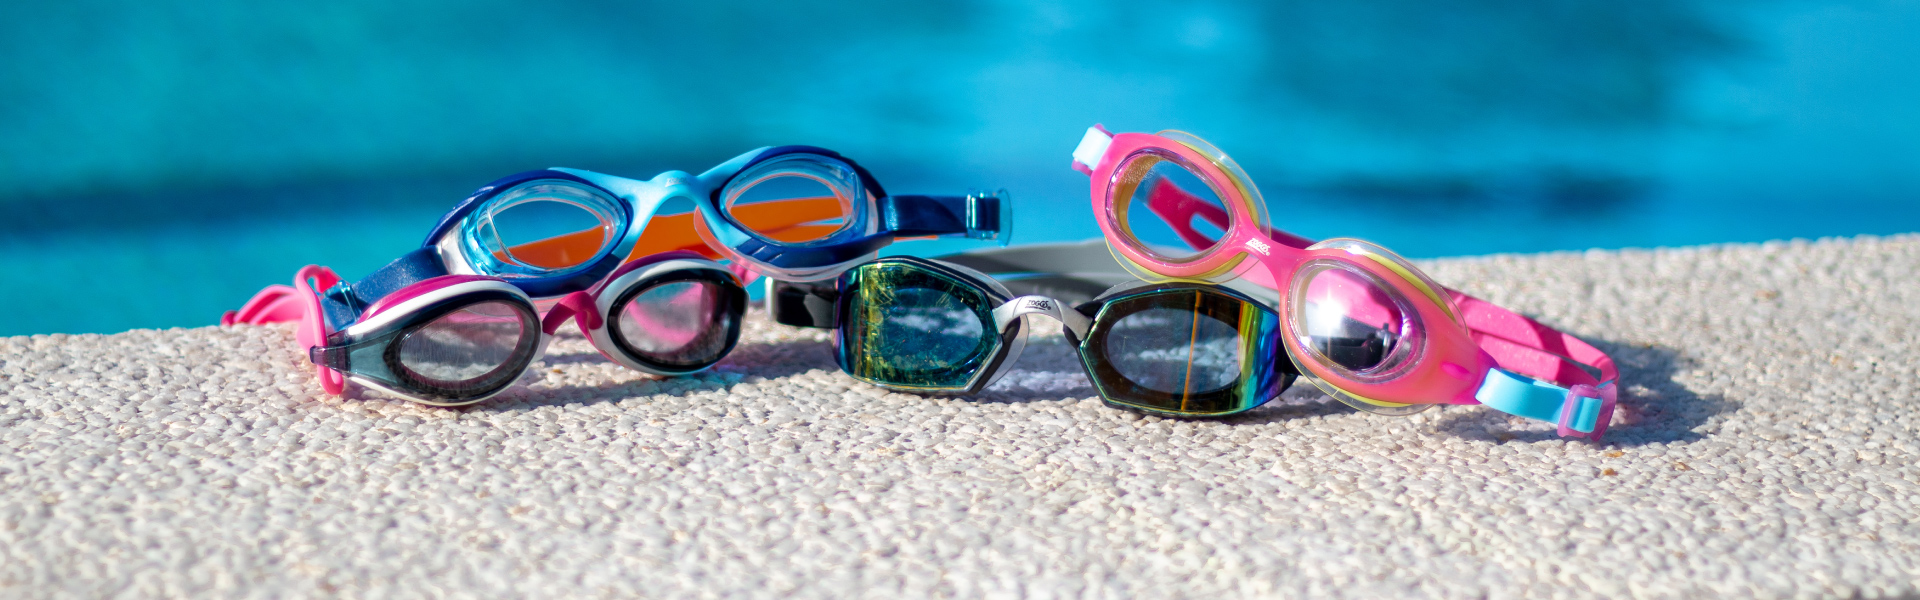 Kids Swimming Goggles: How to Choose the Best Pair